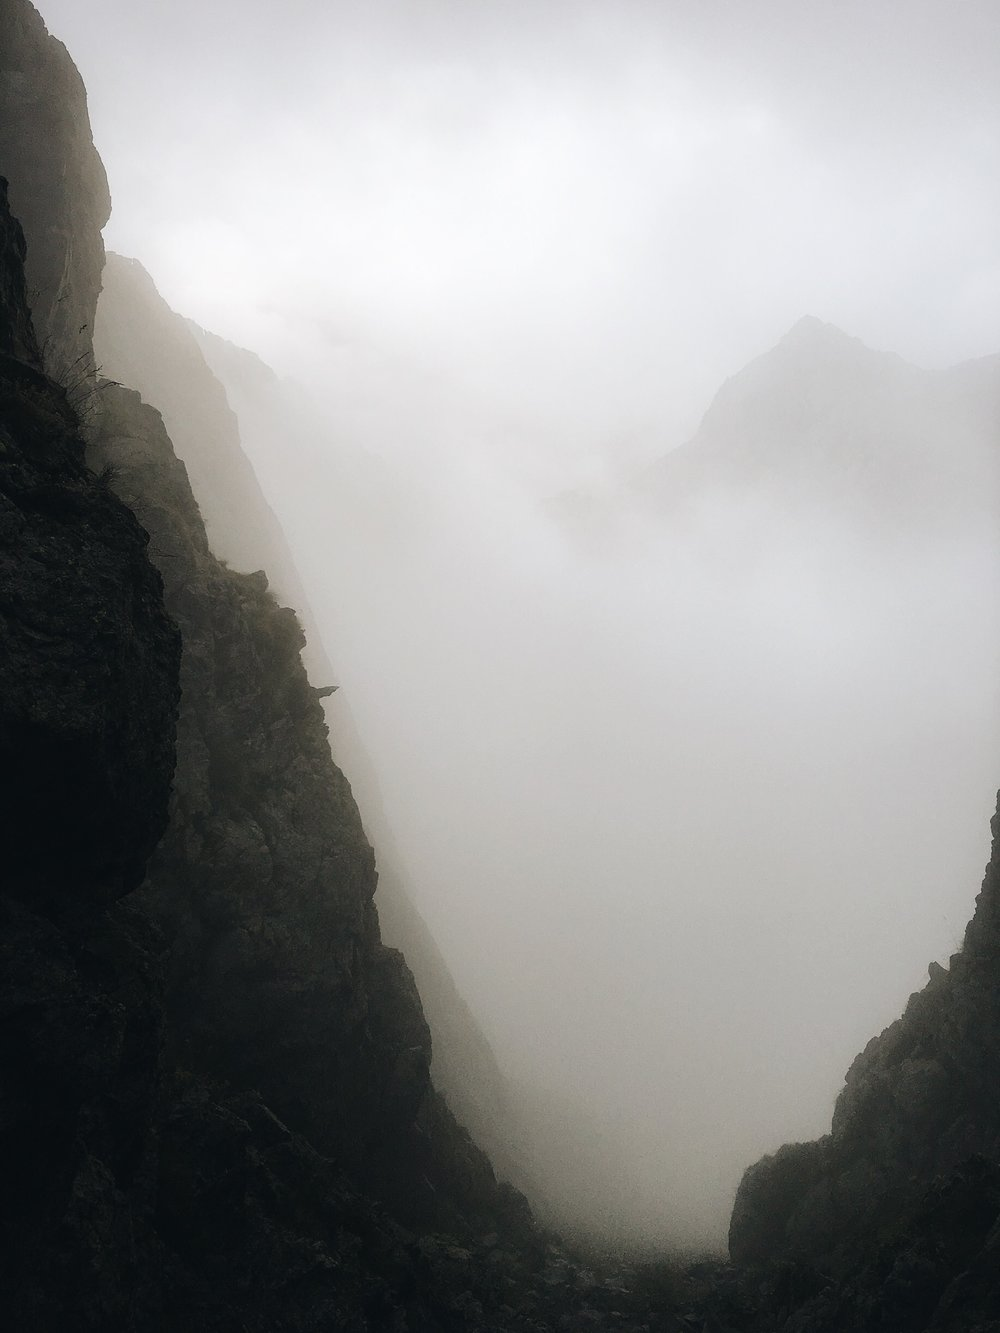 Last Col of the day and a cheeky scramble down in the mist.